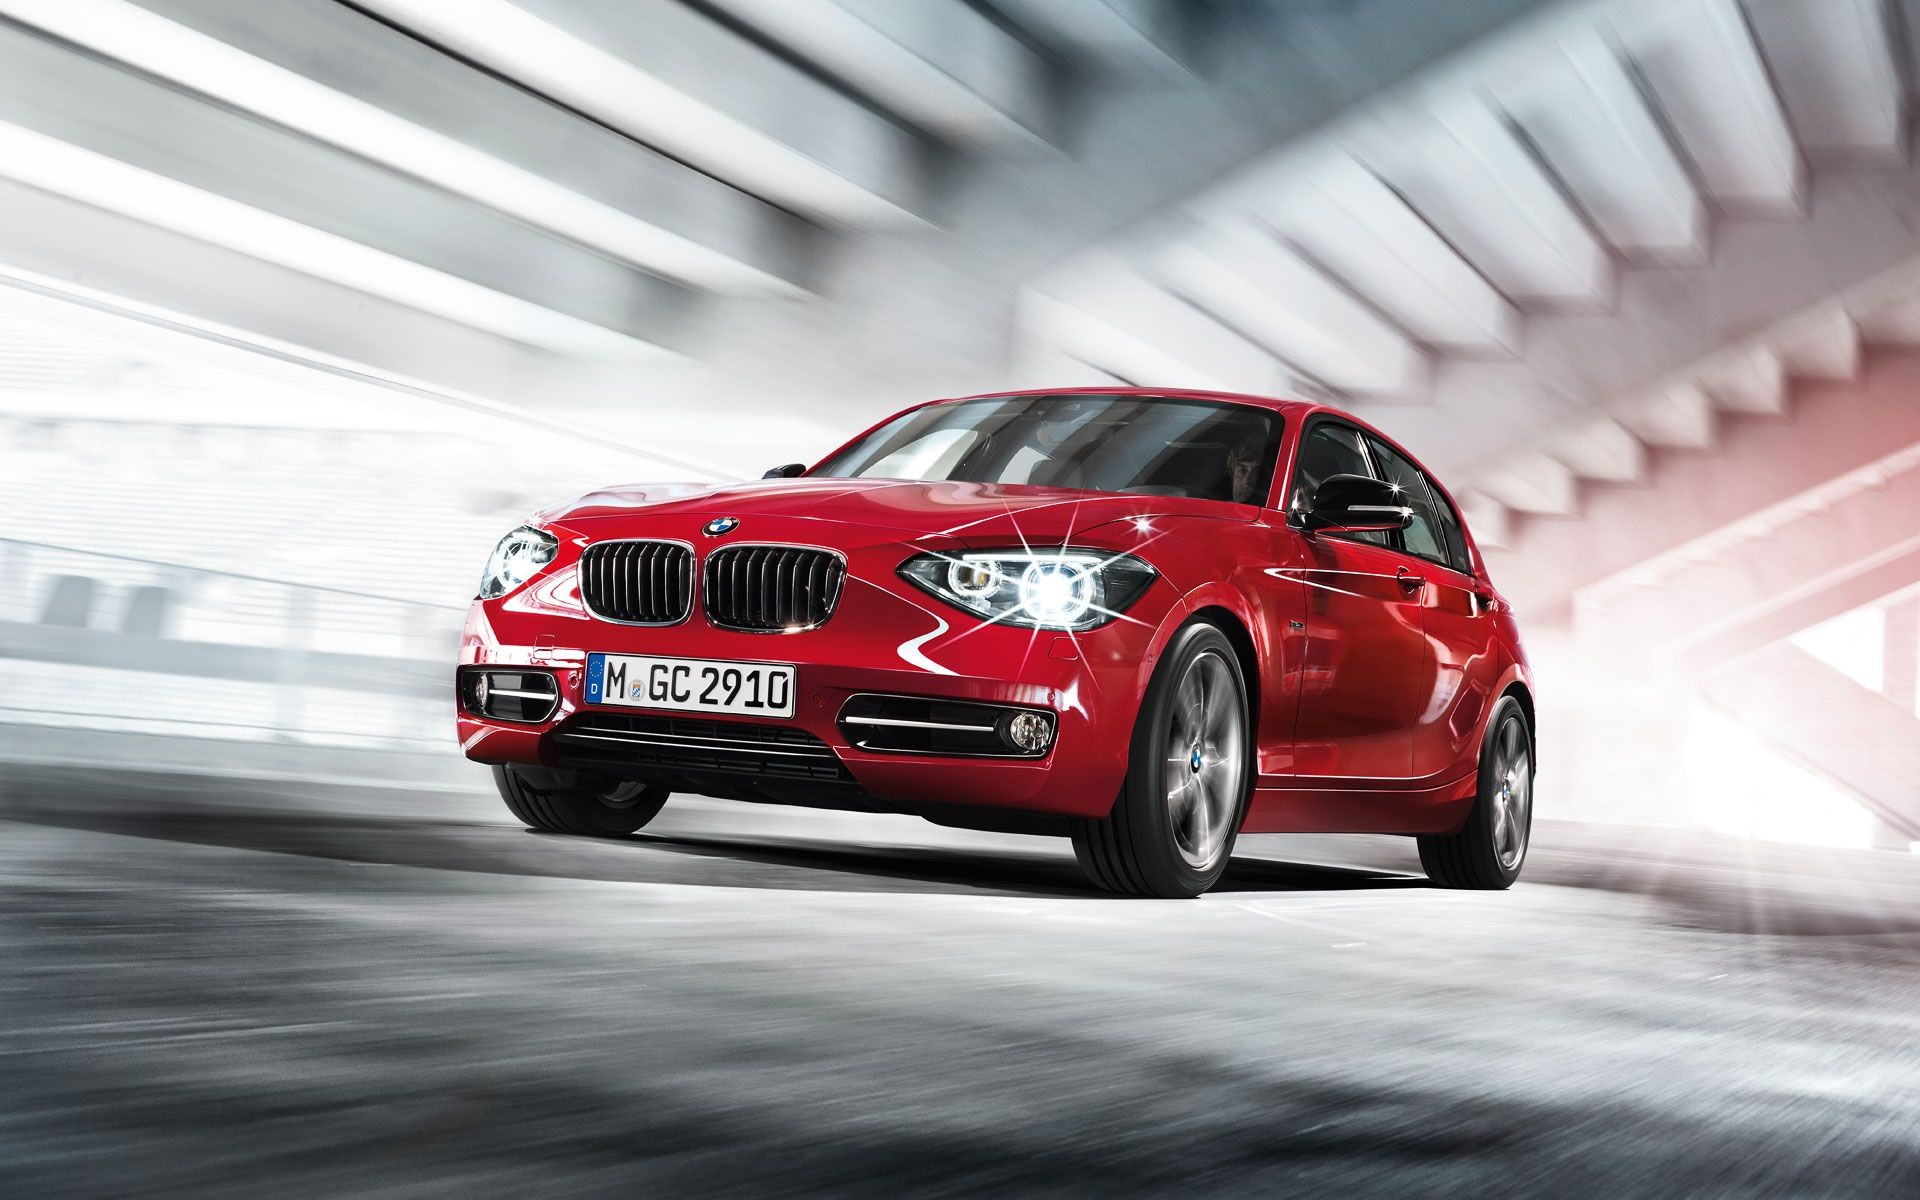 Res: 1920x1200, 2013 BMW 1 Series Hatchback, red car, wallpaper, front side view